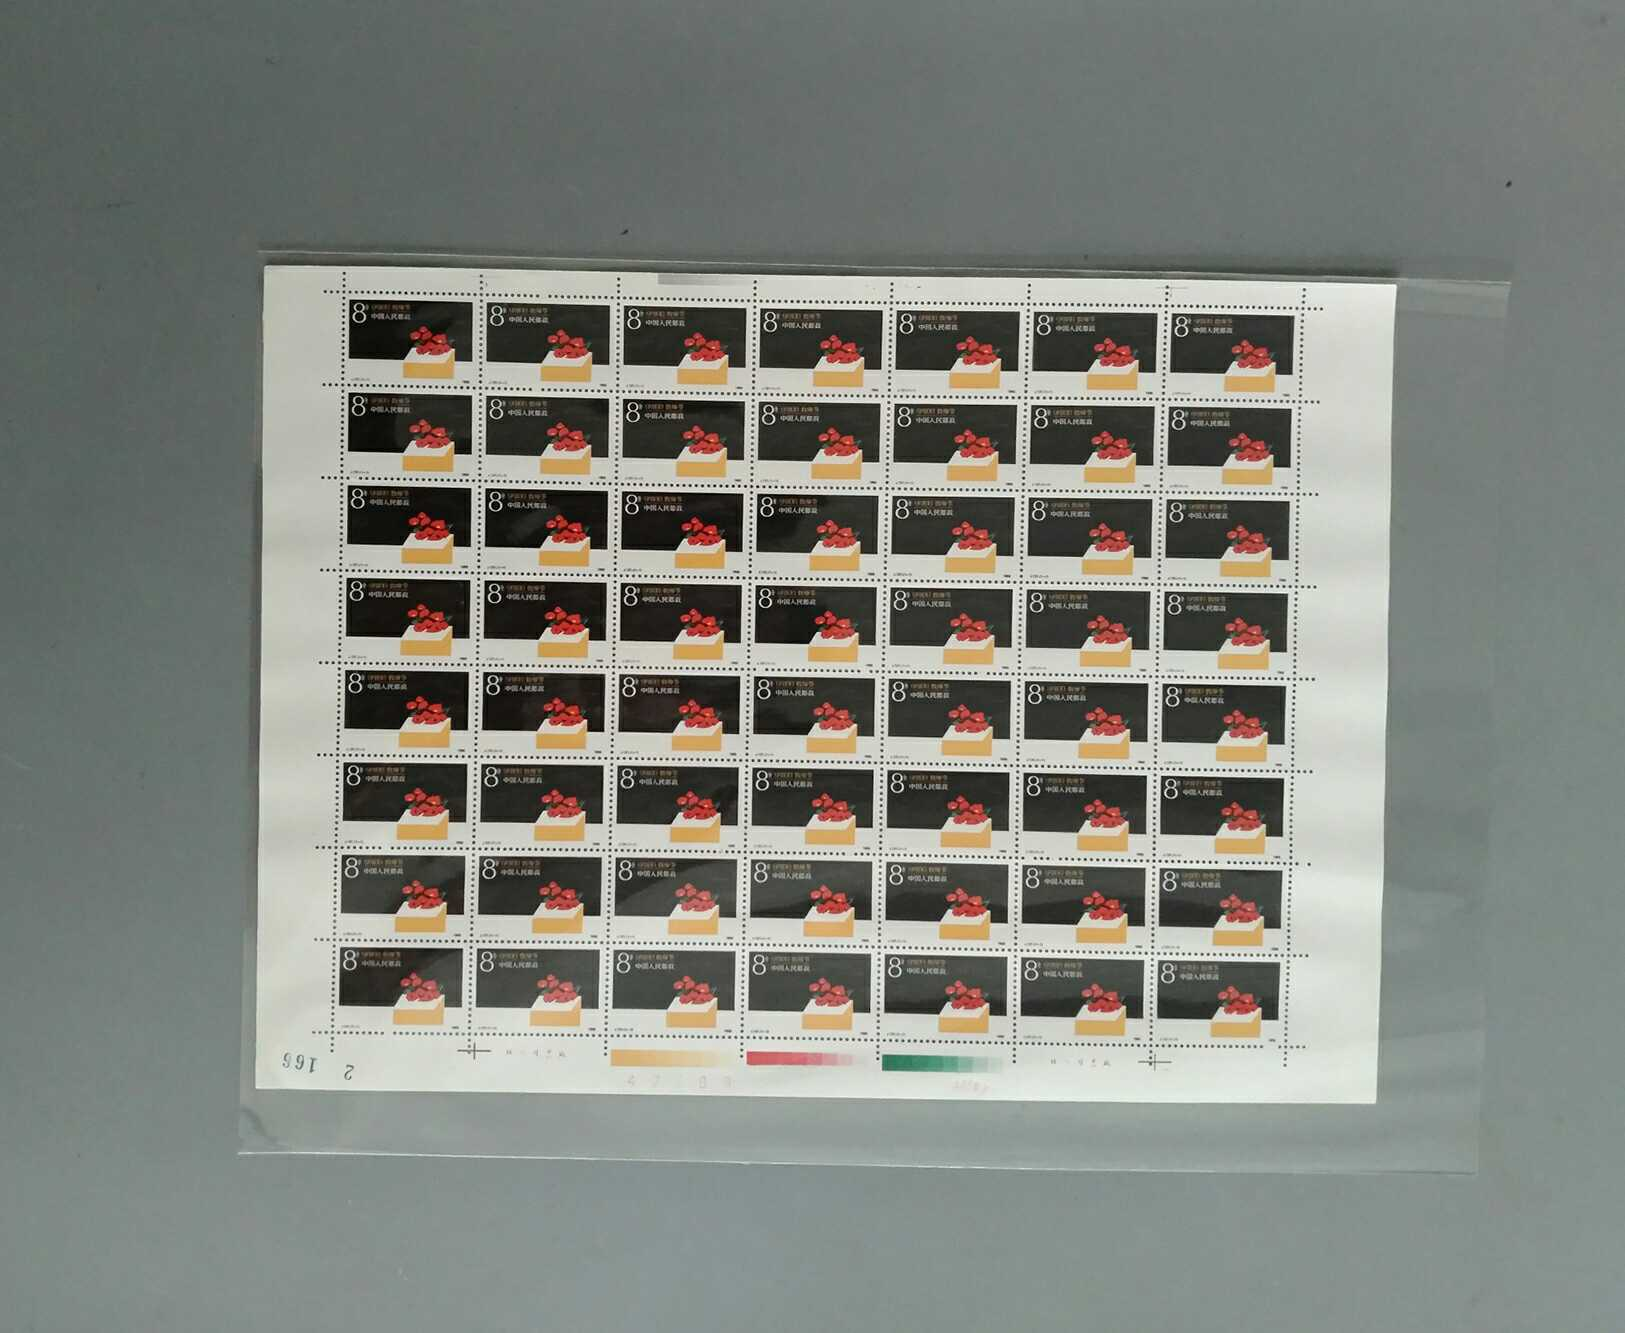 J131 teachers Day Stamp large version of the original gum near the full product, special price real picture delivery edge paper slightly soft fold.